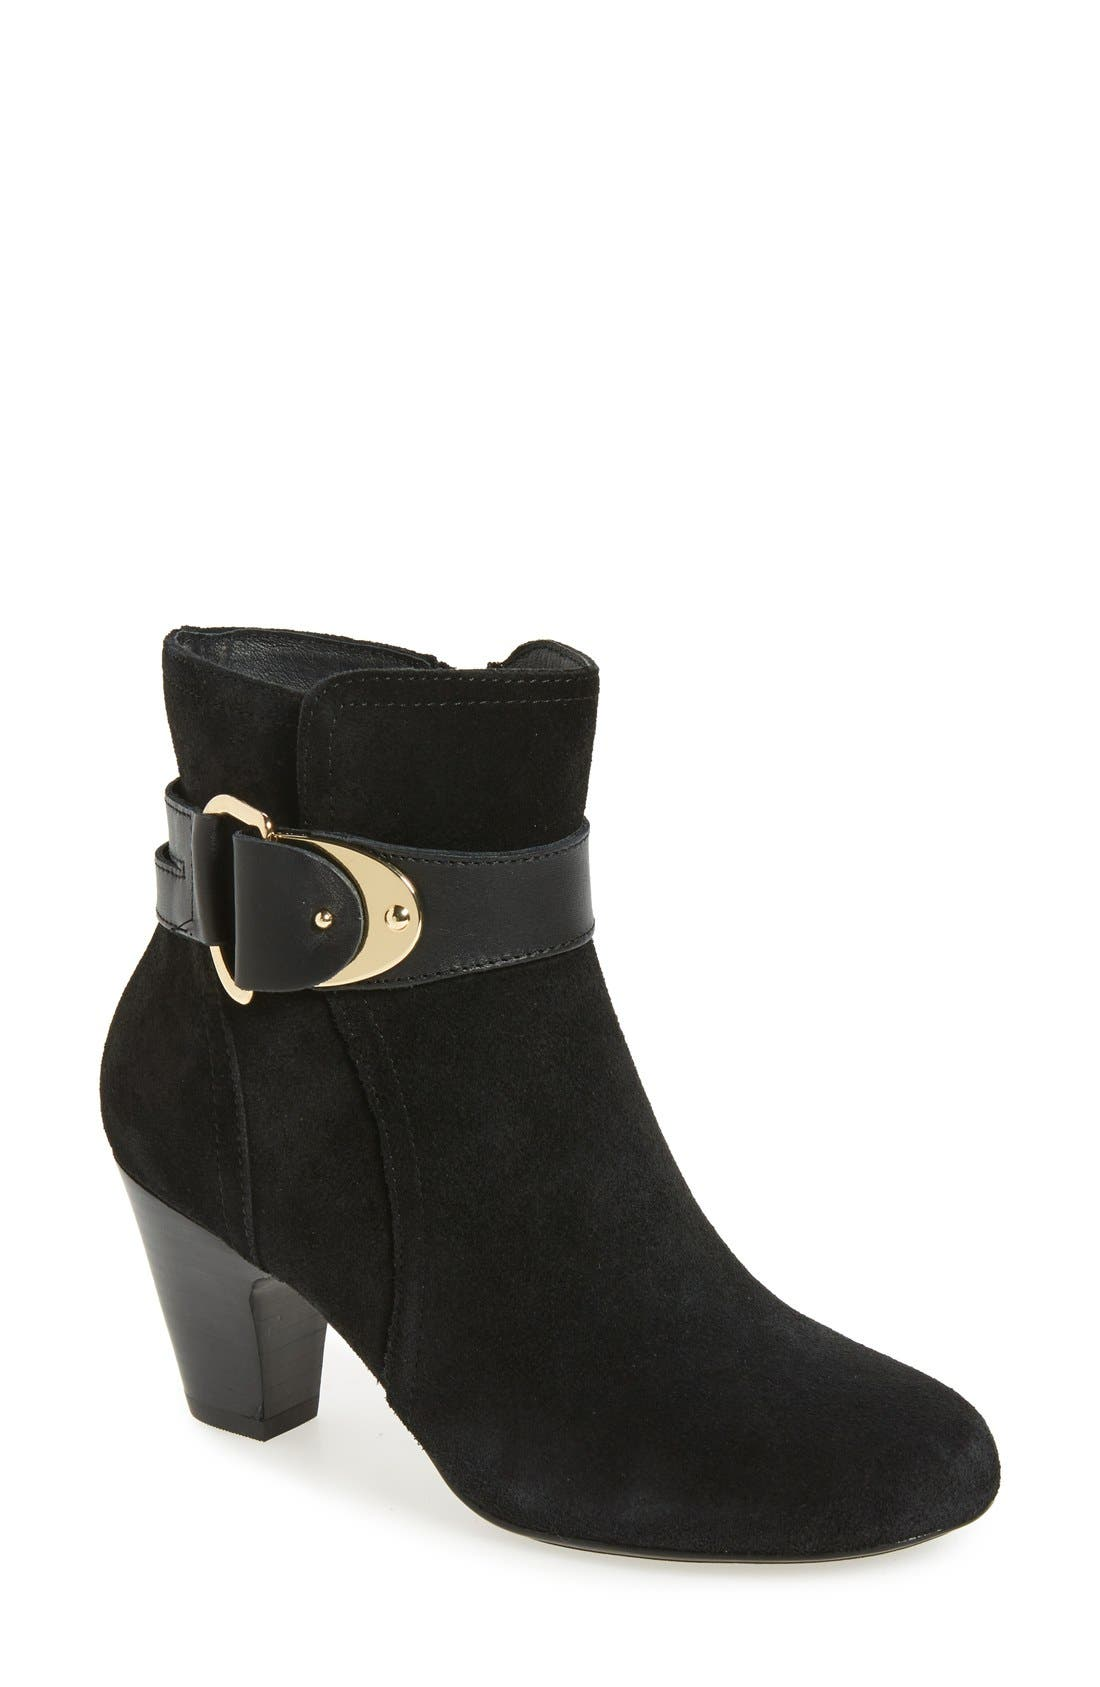 'Nadra' Ankle Strap Bootie, Main, color, 001